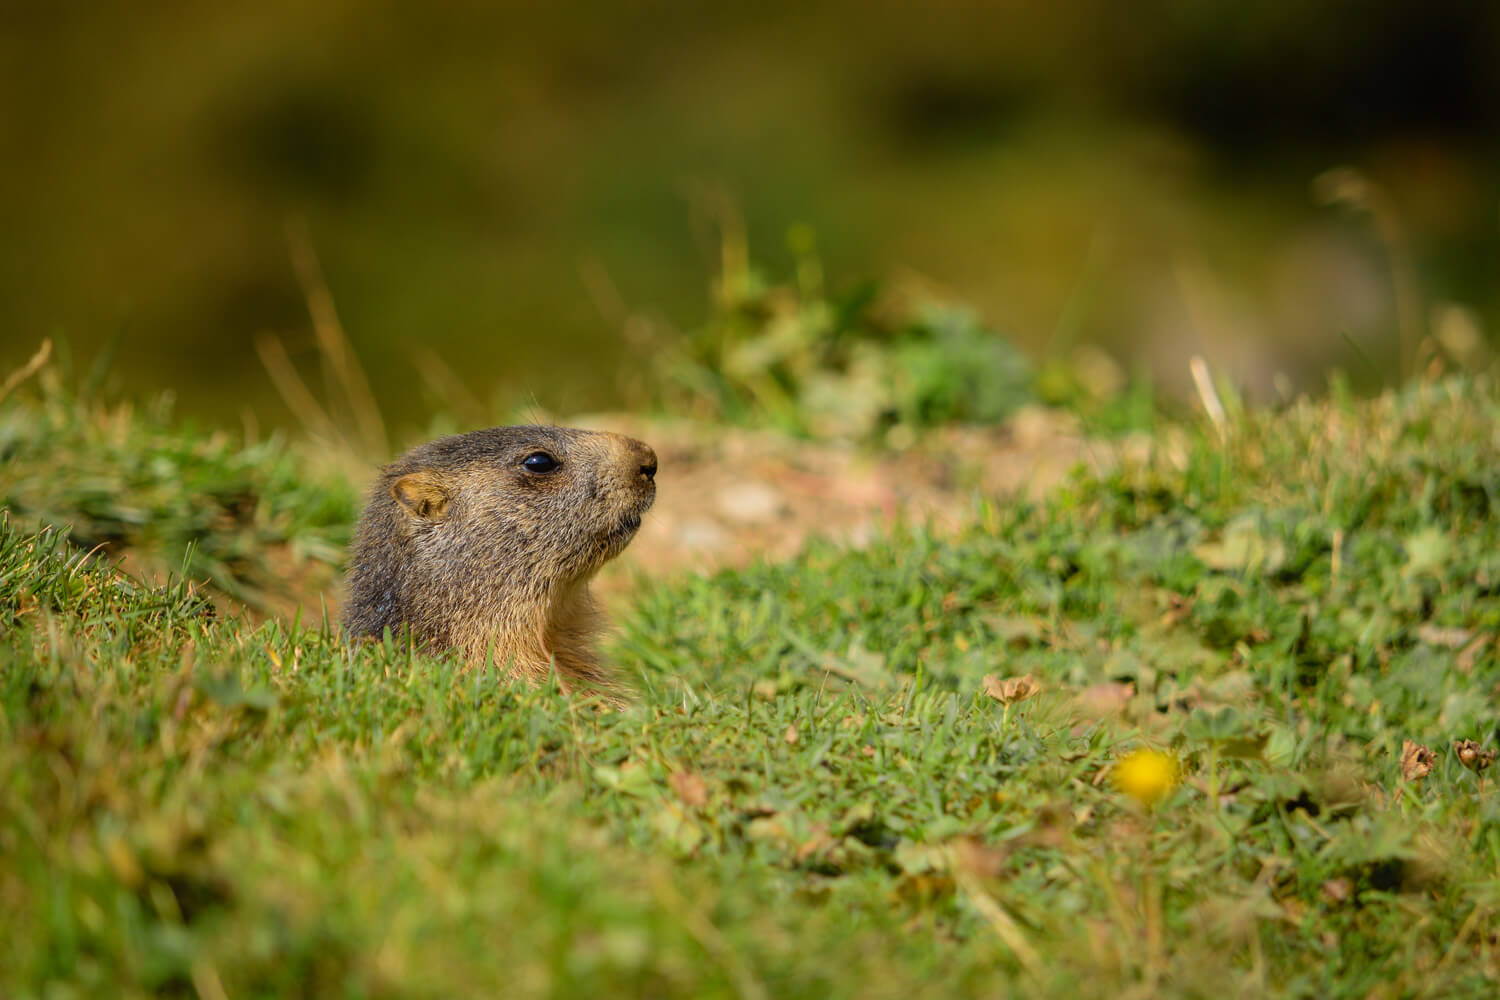 balade marche vallee chapieux marmottes alpage idee week-end